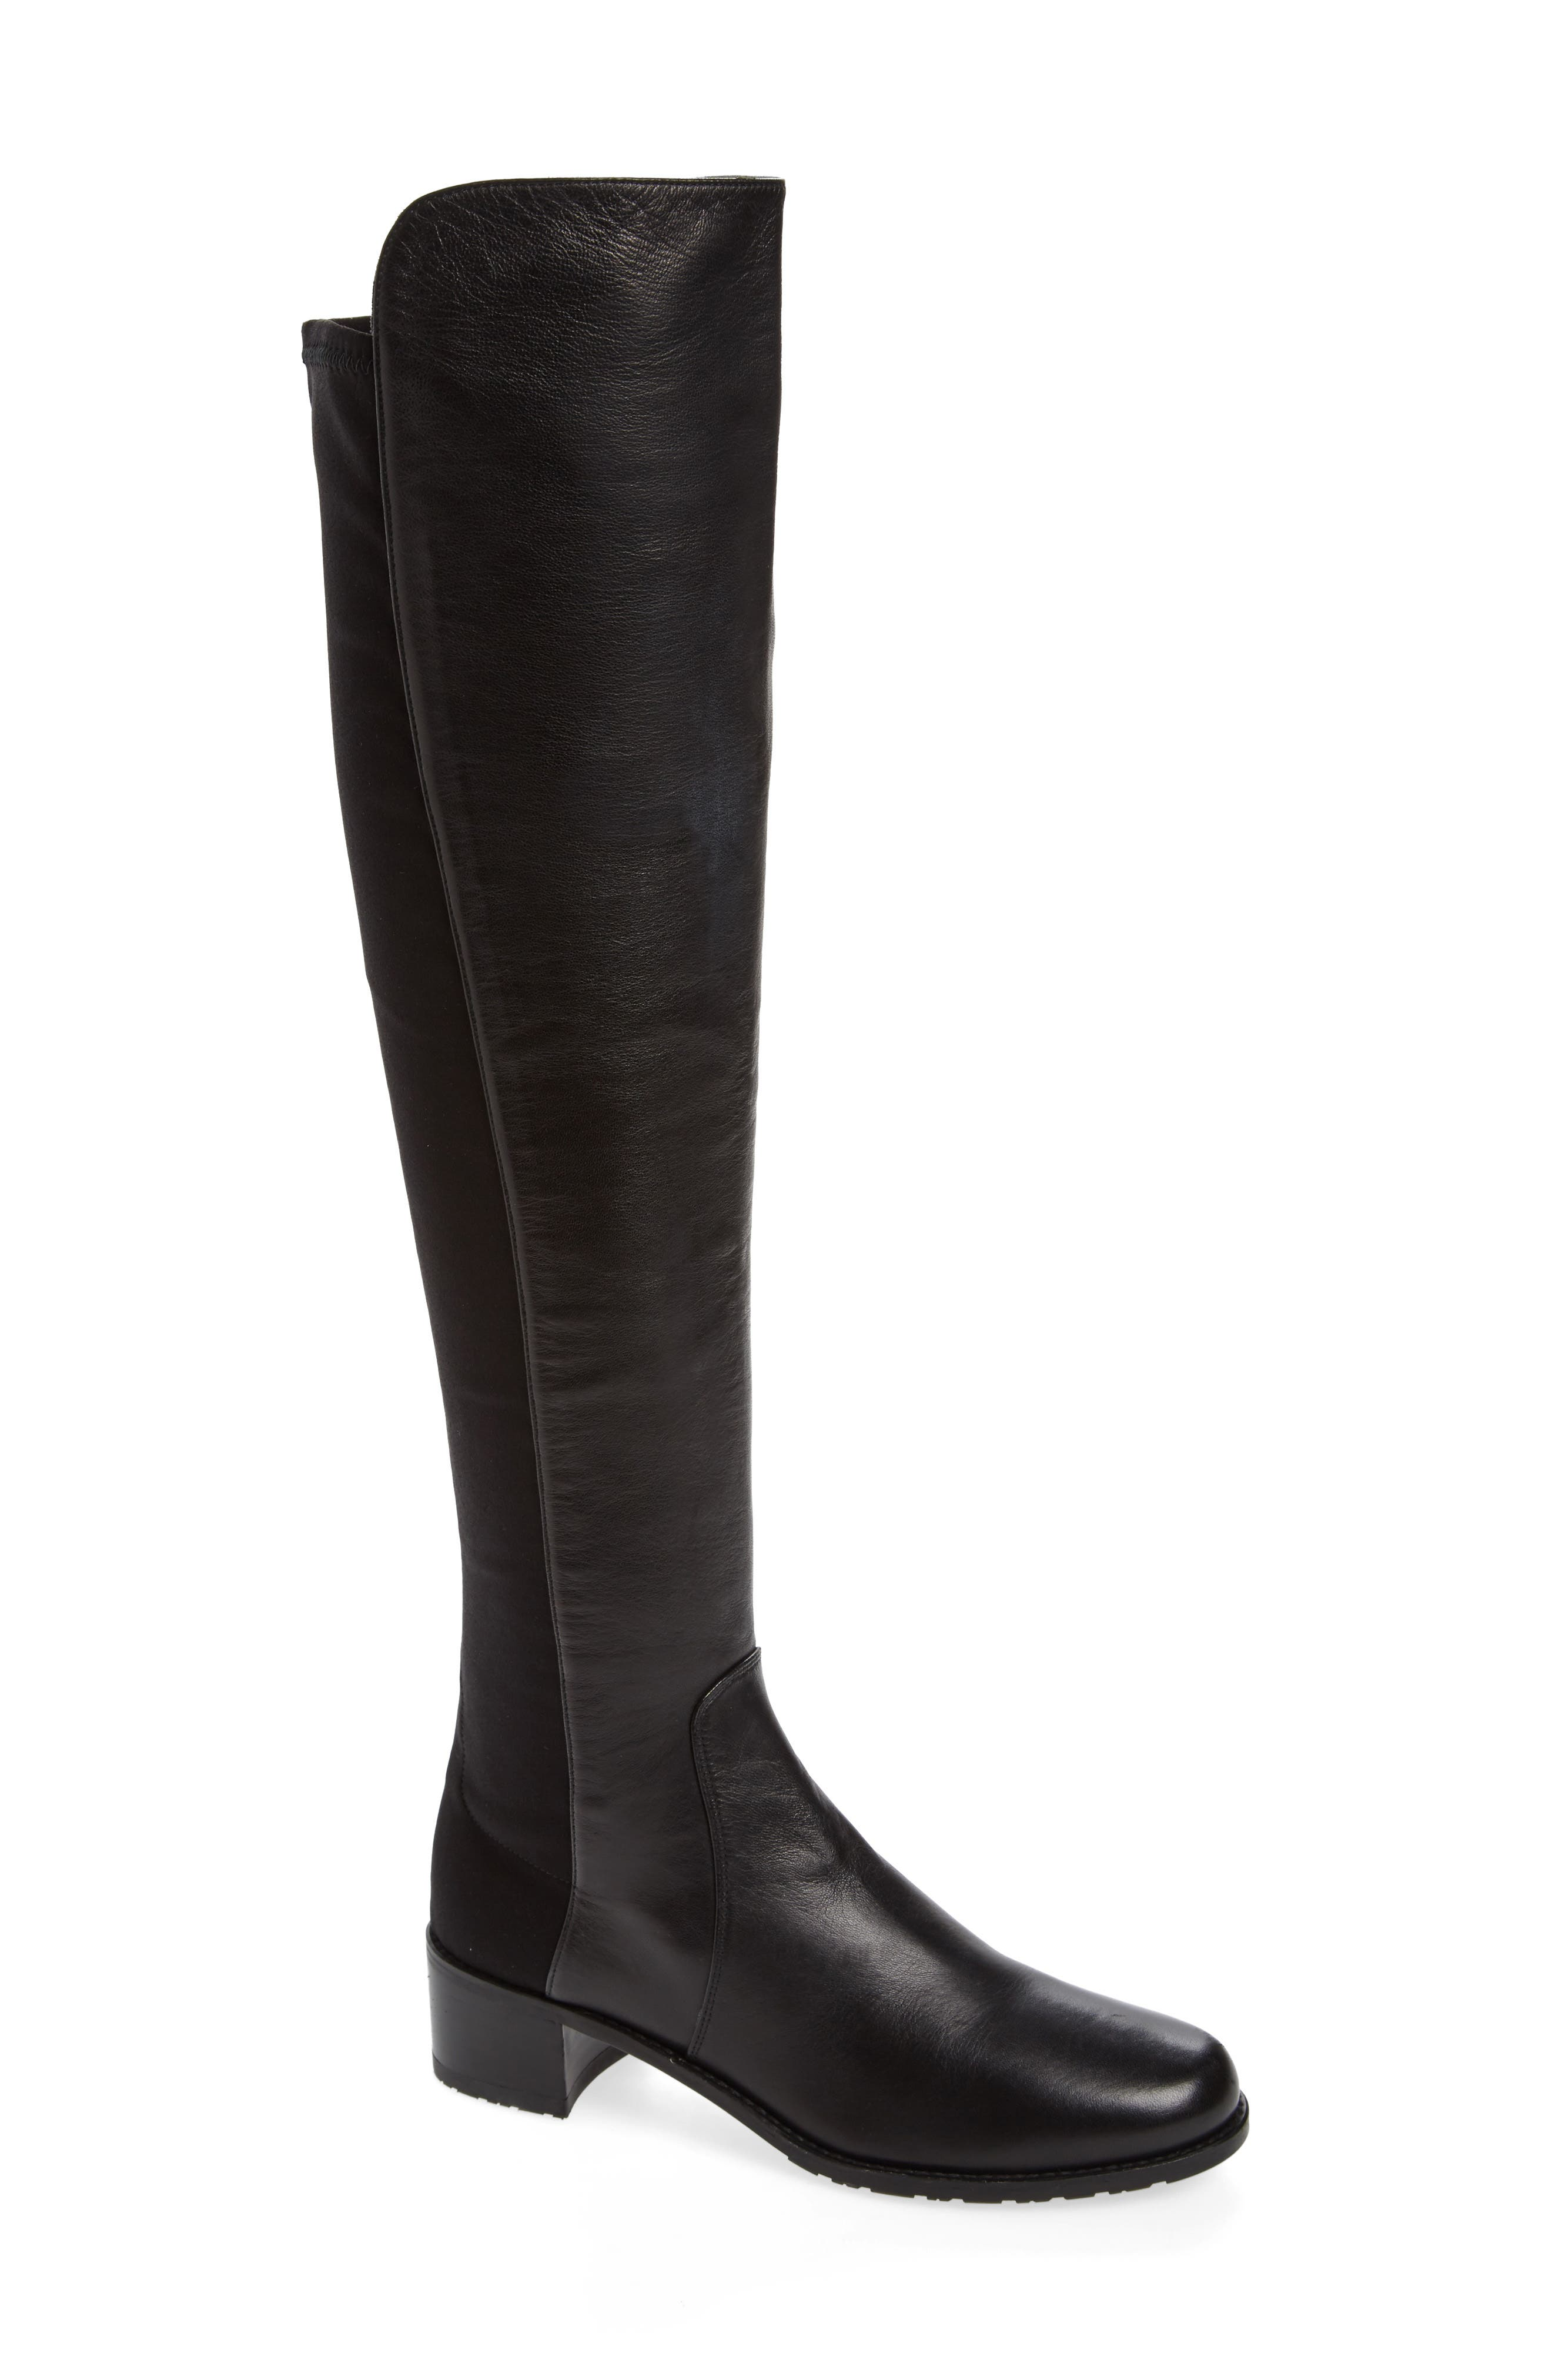 'reserve' Over The Knee Boot by Stuart Weitzman